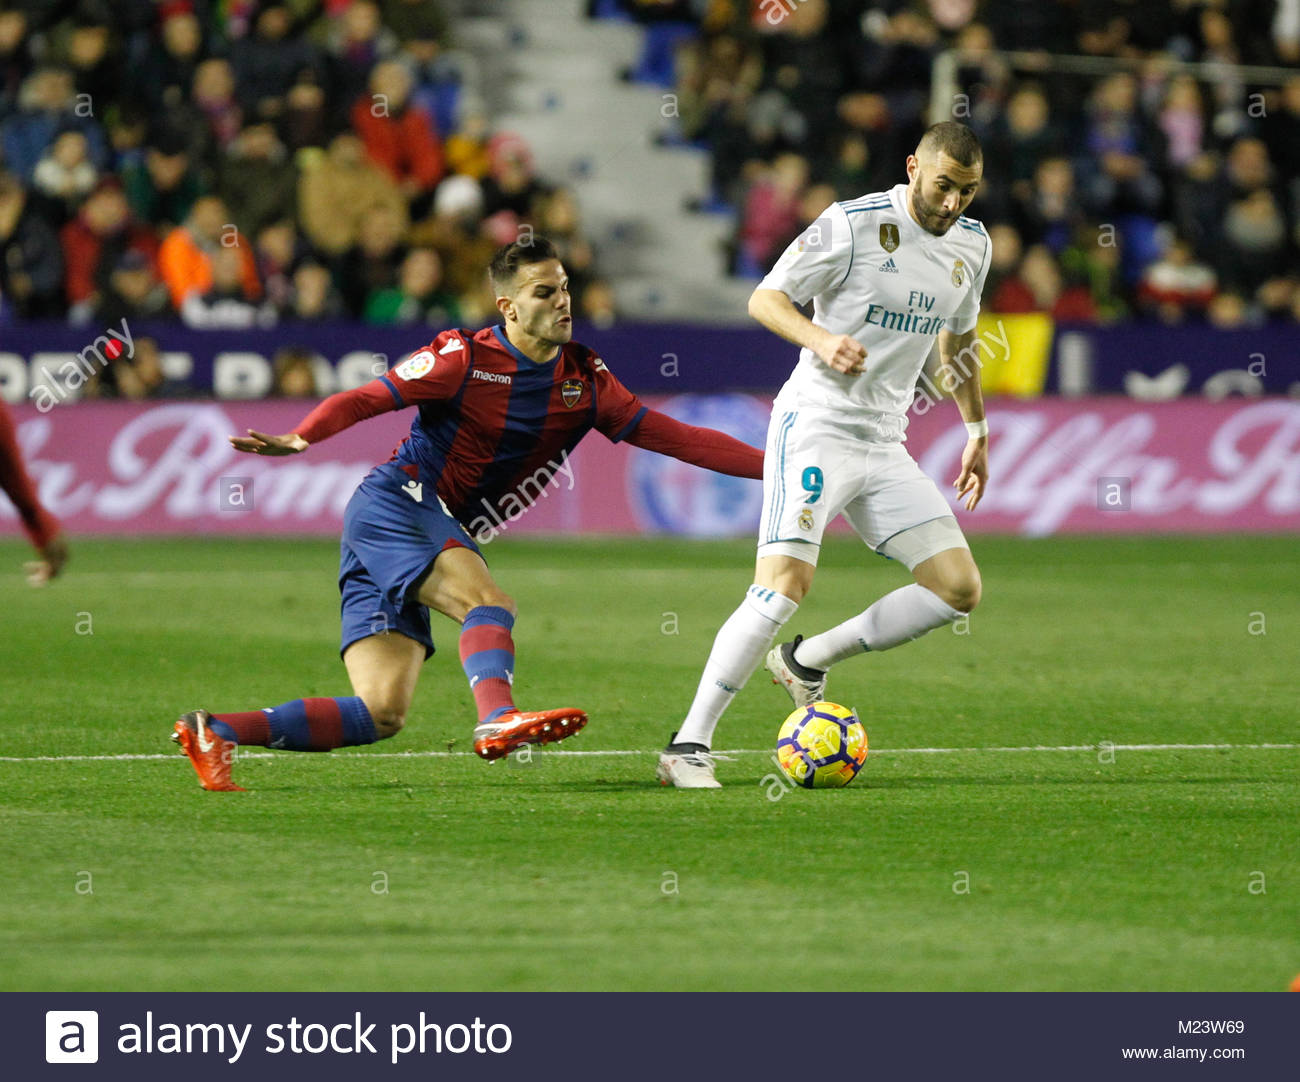 Real Madrid's french Karim benzema during a La Liga match versus Levante ud - Stock Image